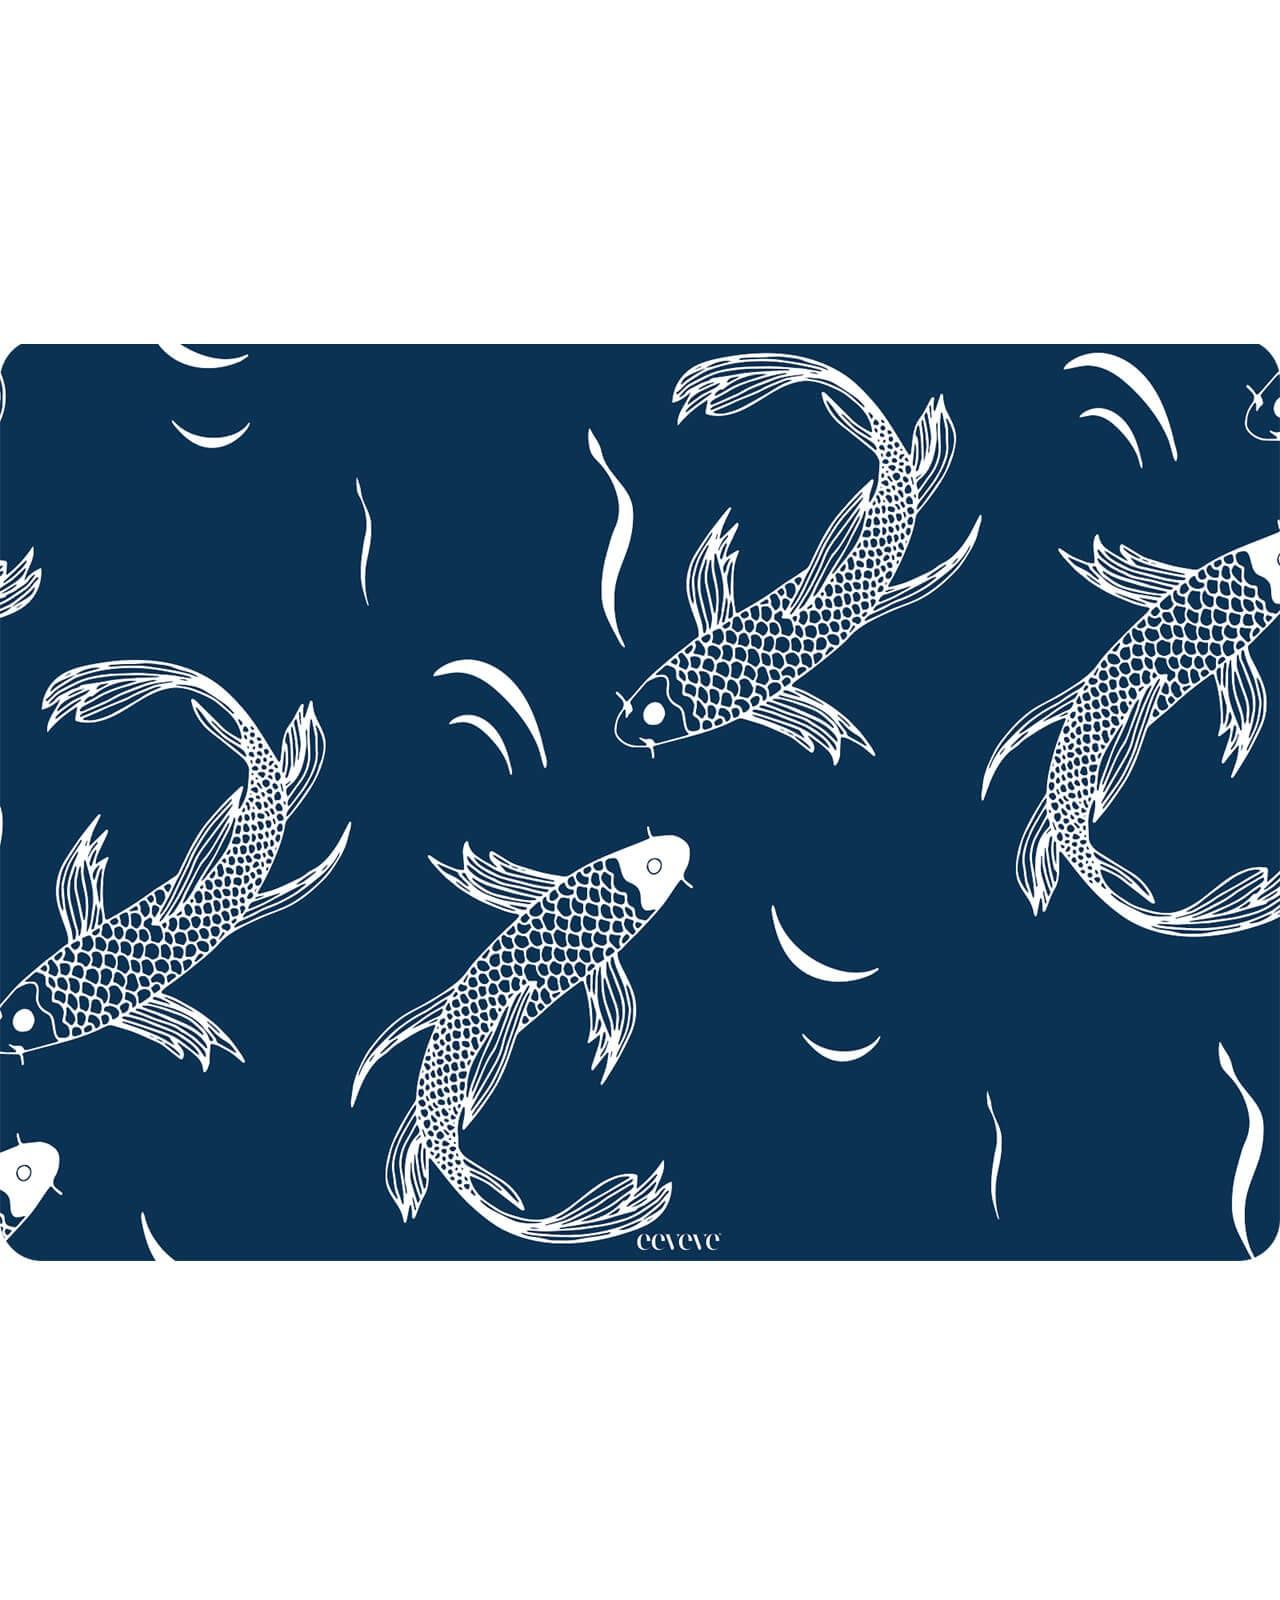 Eeveve - 6x Placemats Japanese Fish - Blue